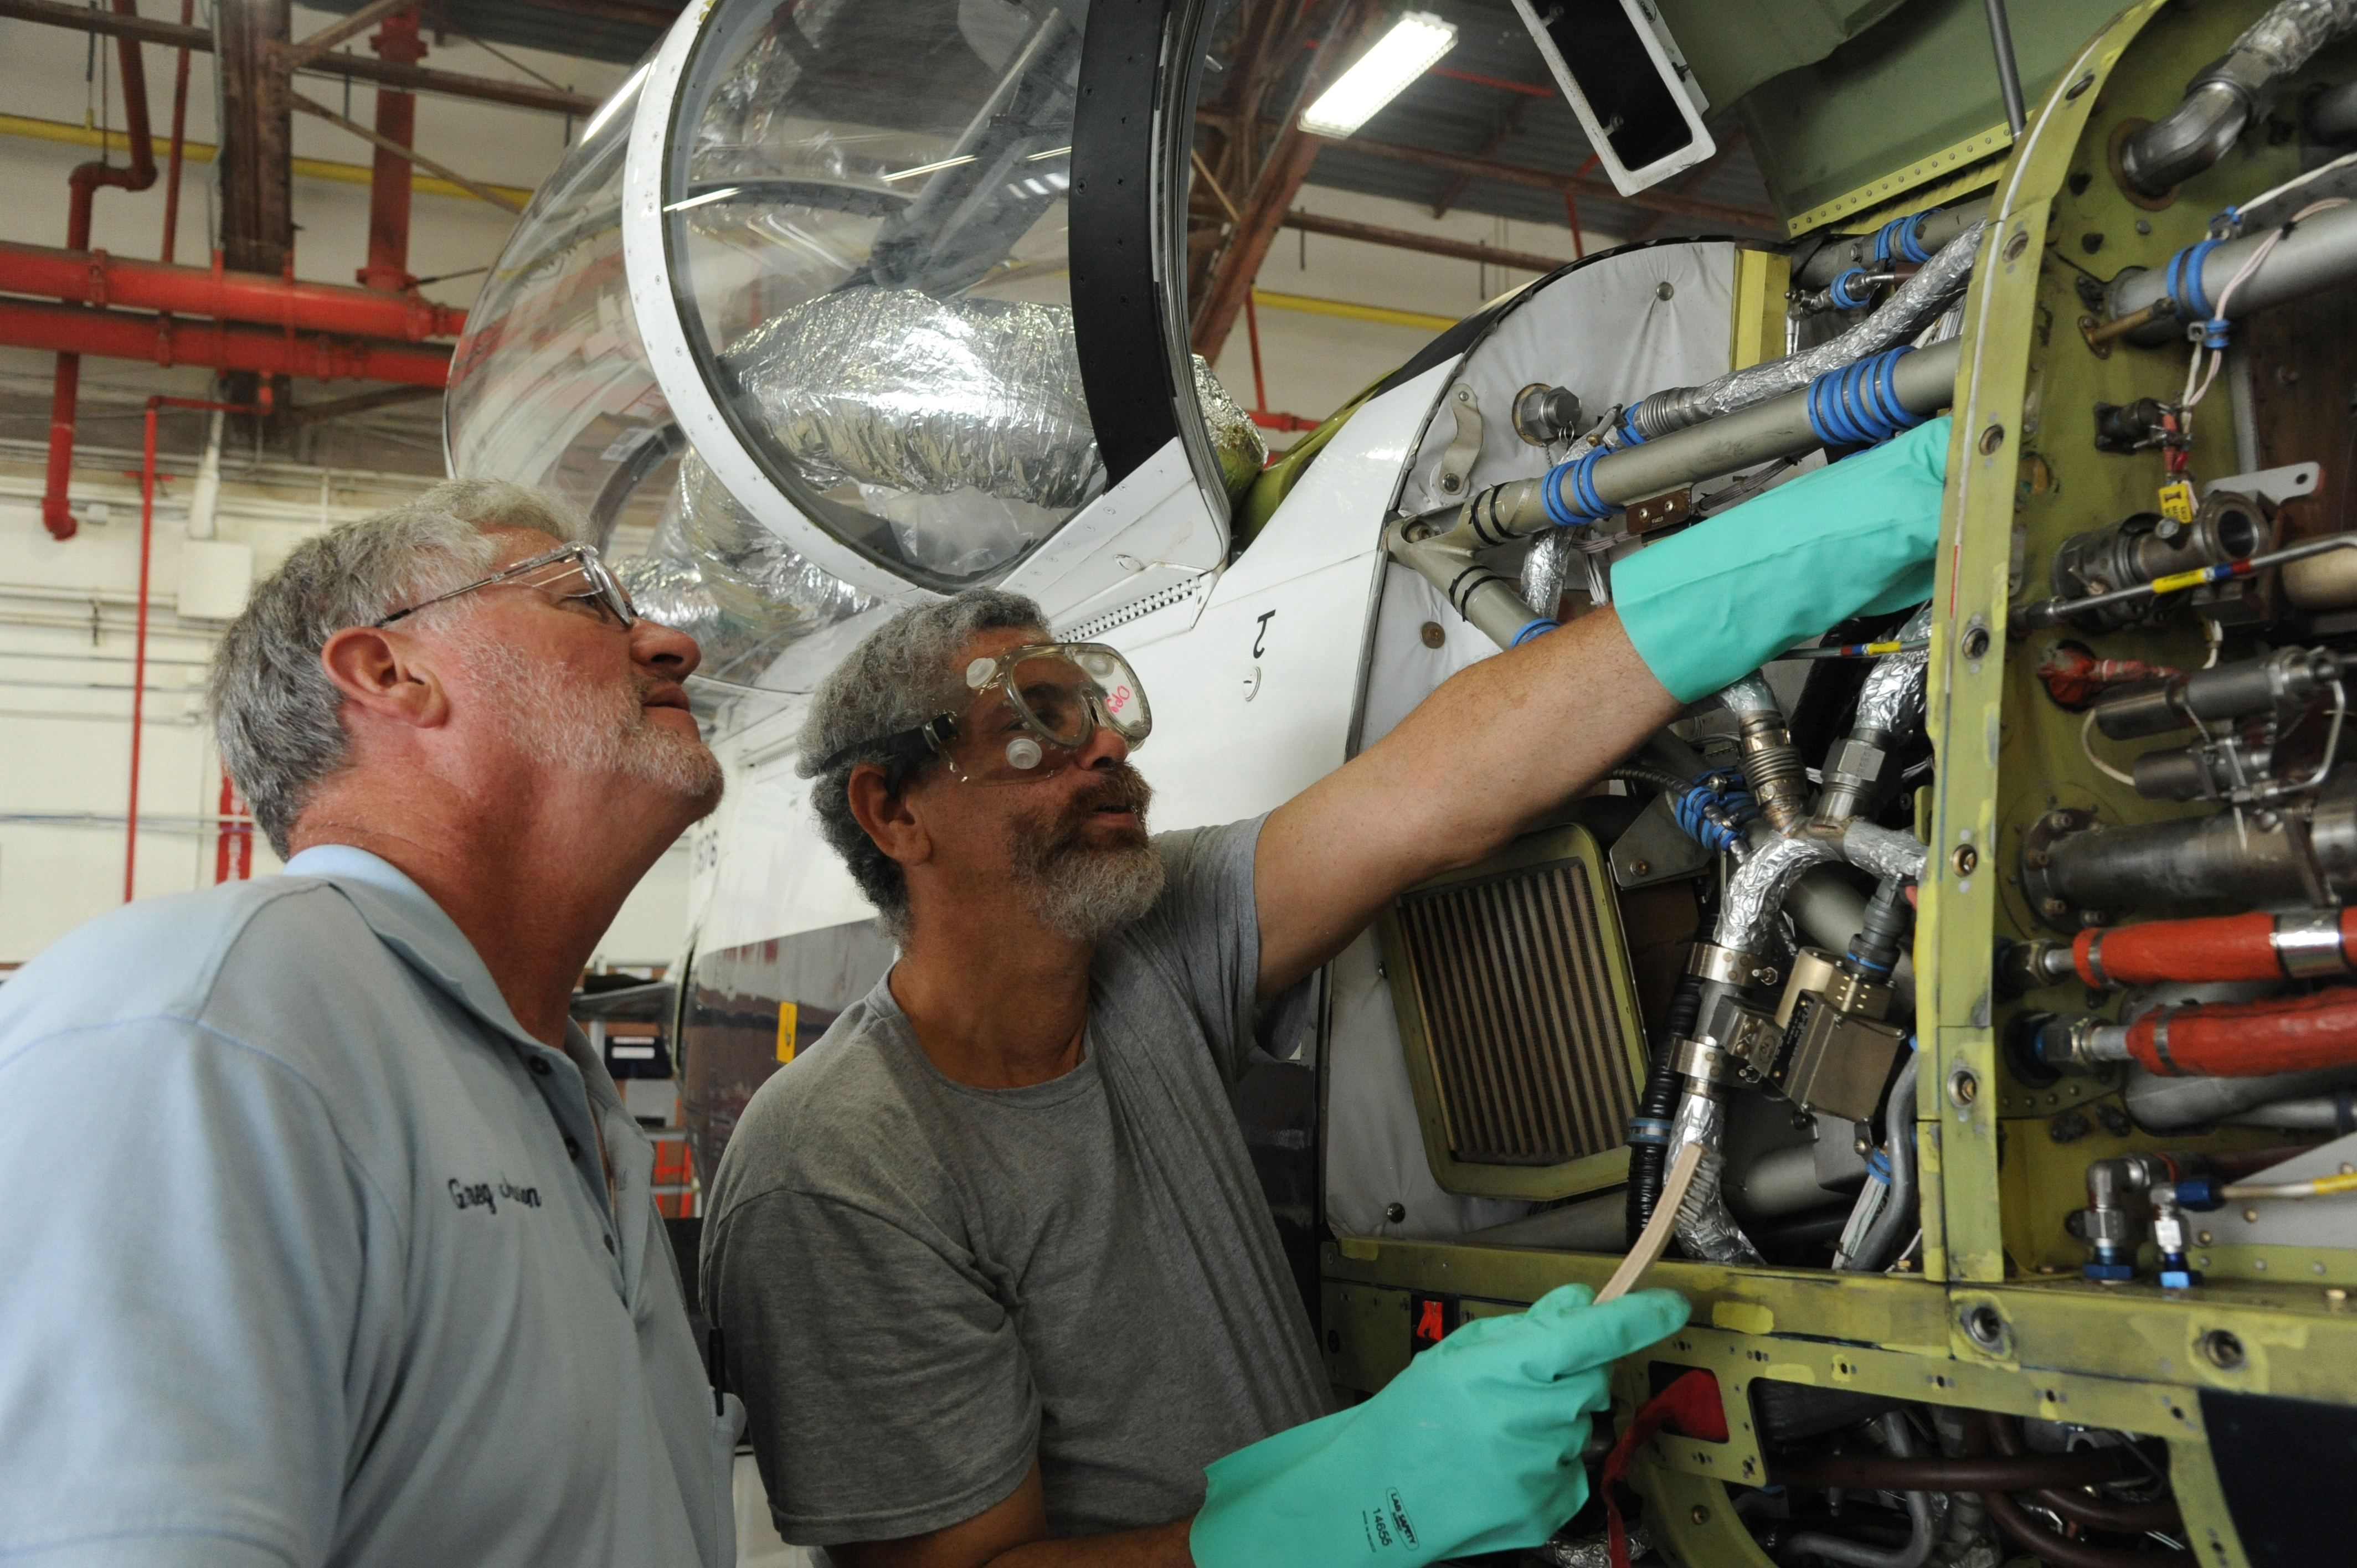 Workers Use Protective Eyewear To Prevent Injuries Gt Joint